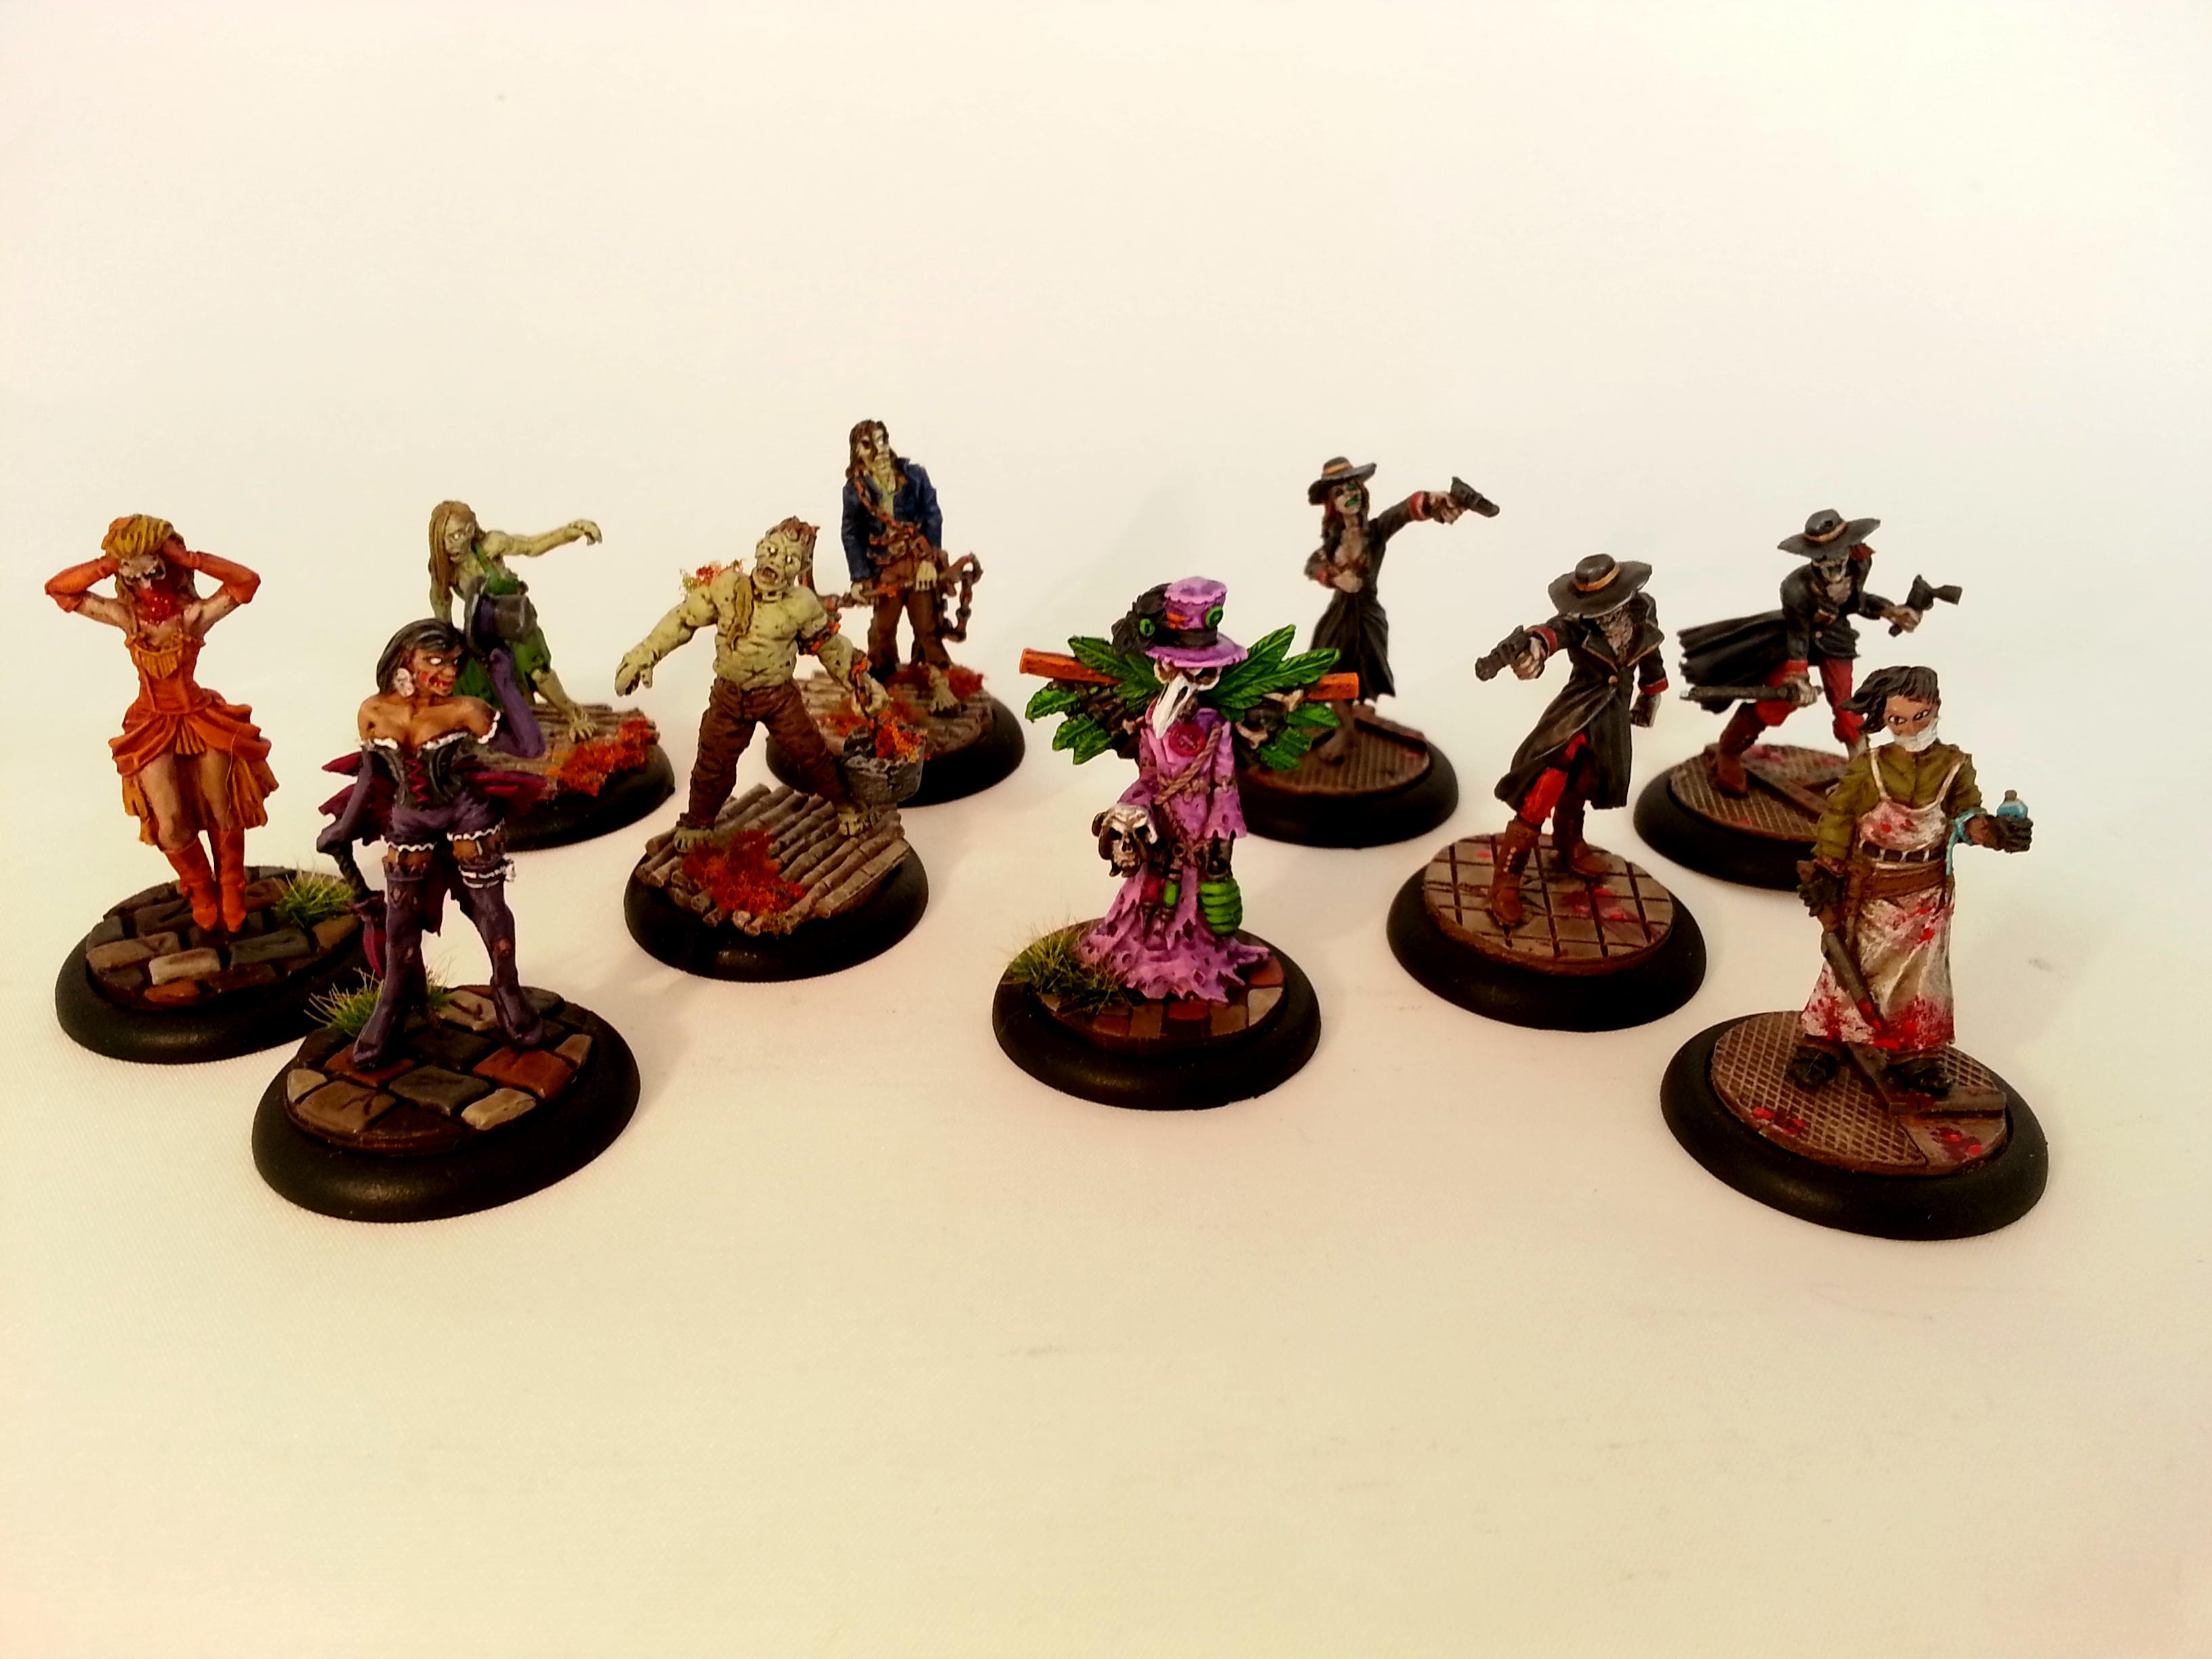 Avatar, Dead, Faction, Horde, Malifaux, Resurrectionists, Spirit, Undead